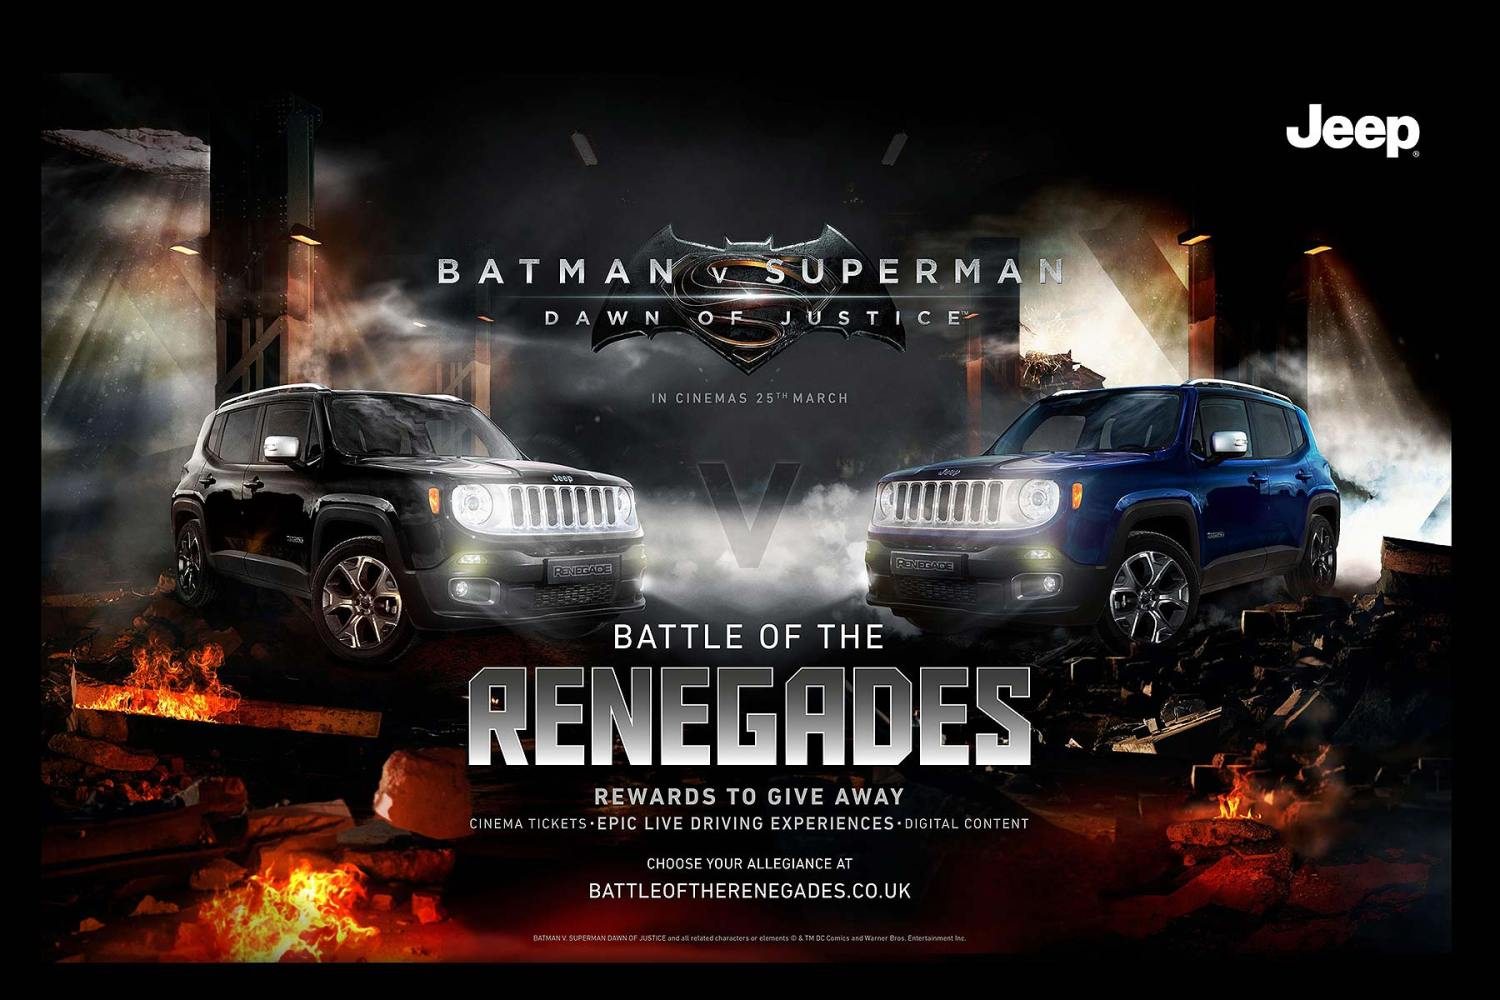 Jeep Batman v Superman Battle of the Renegades